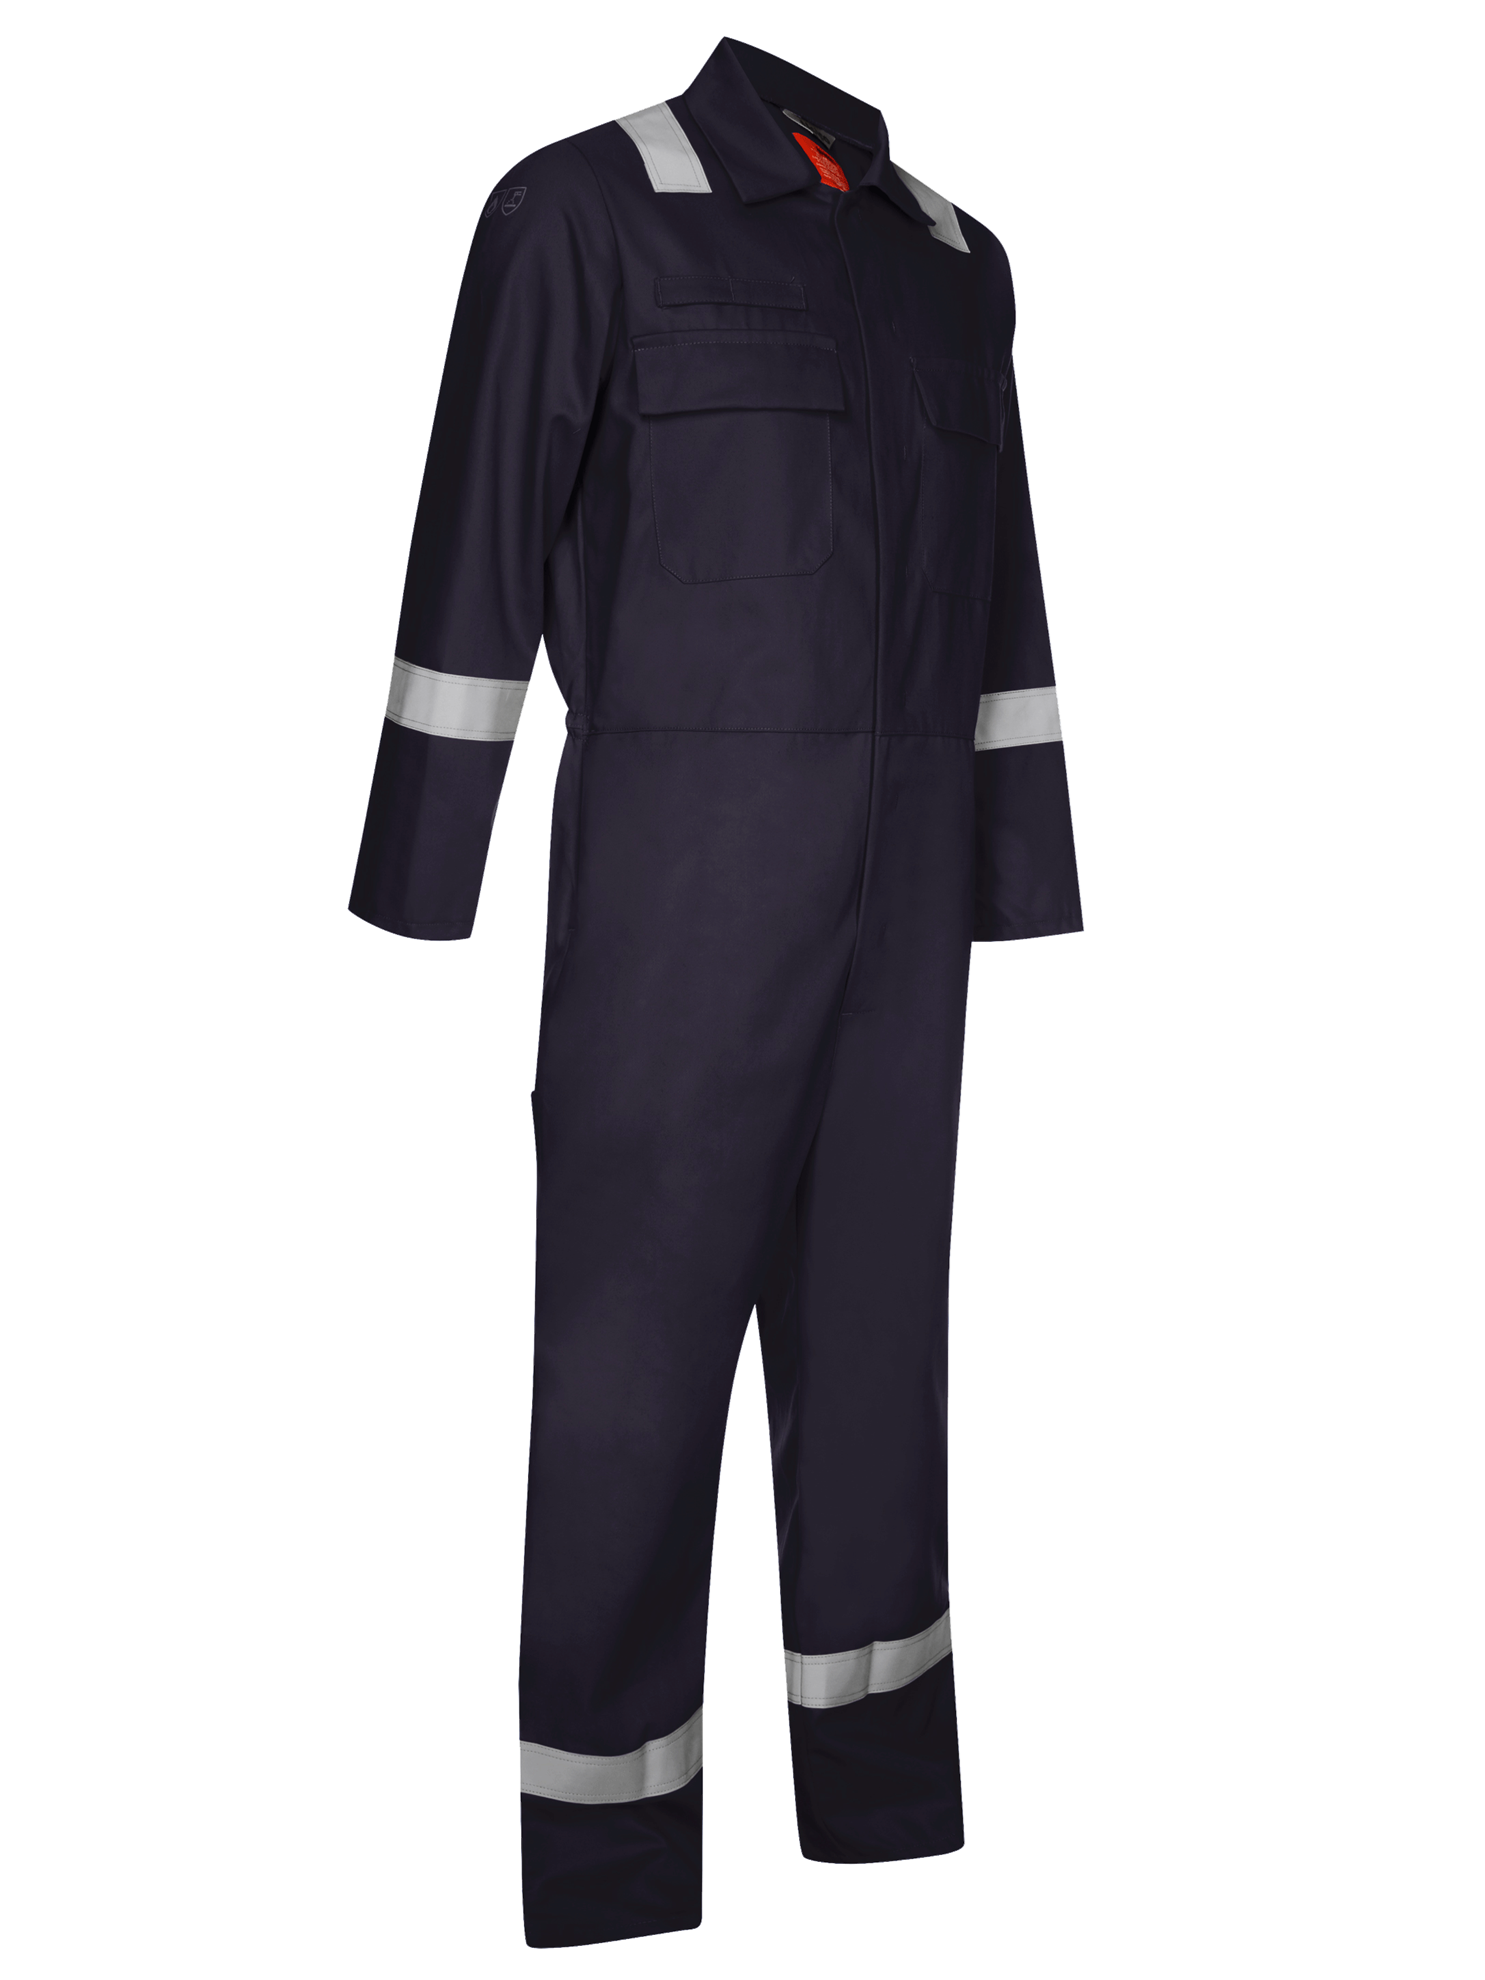 Picture of Coverall made with Phoenix - Navy